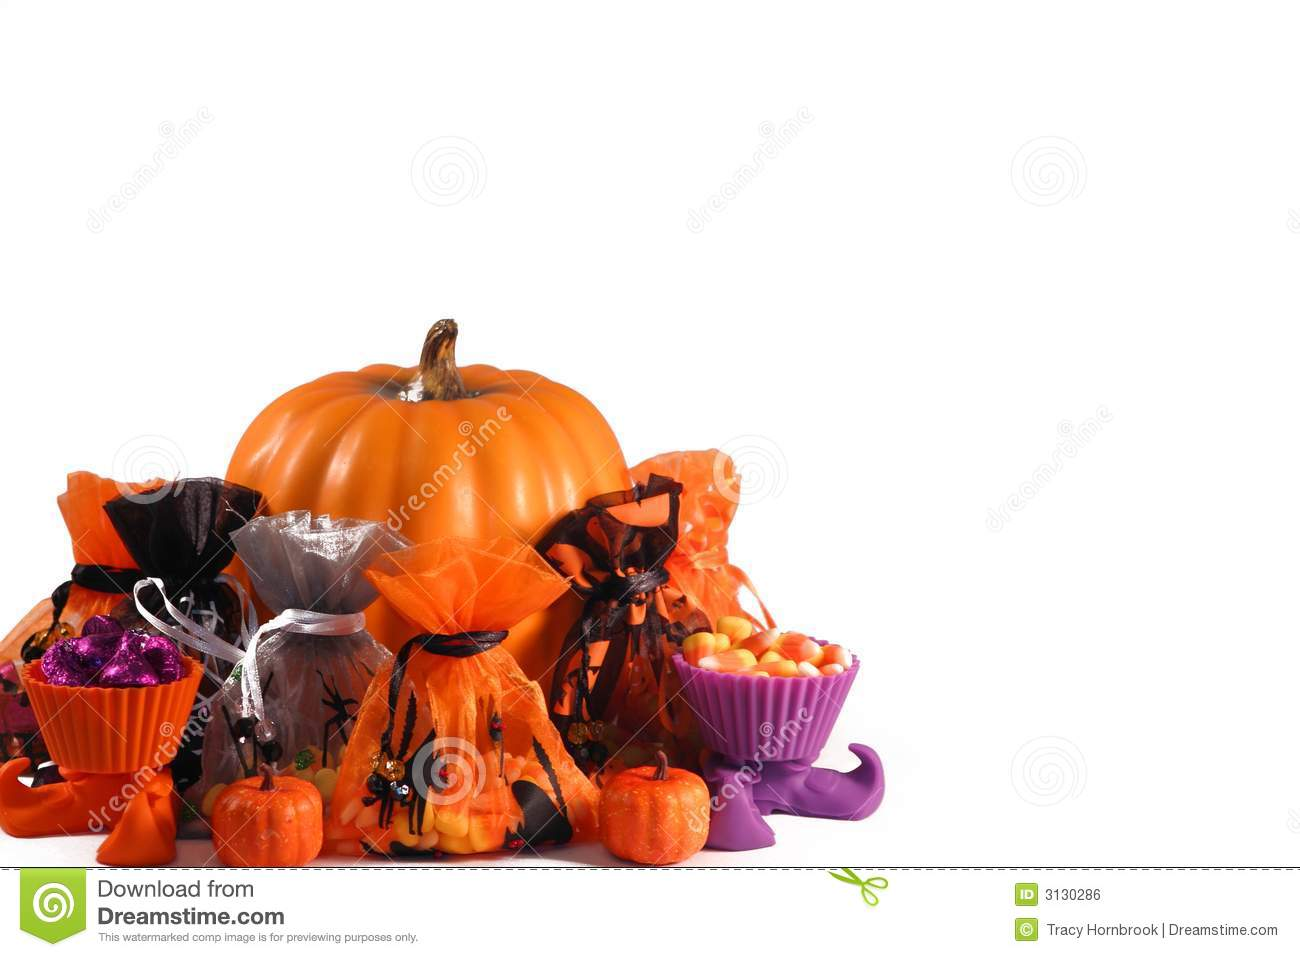 Ordningshalloween treats